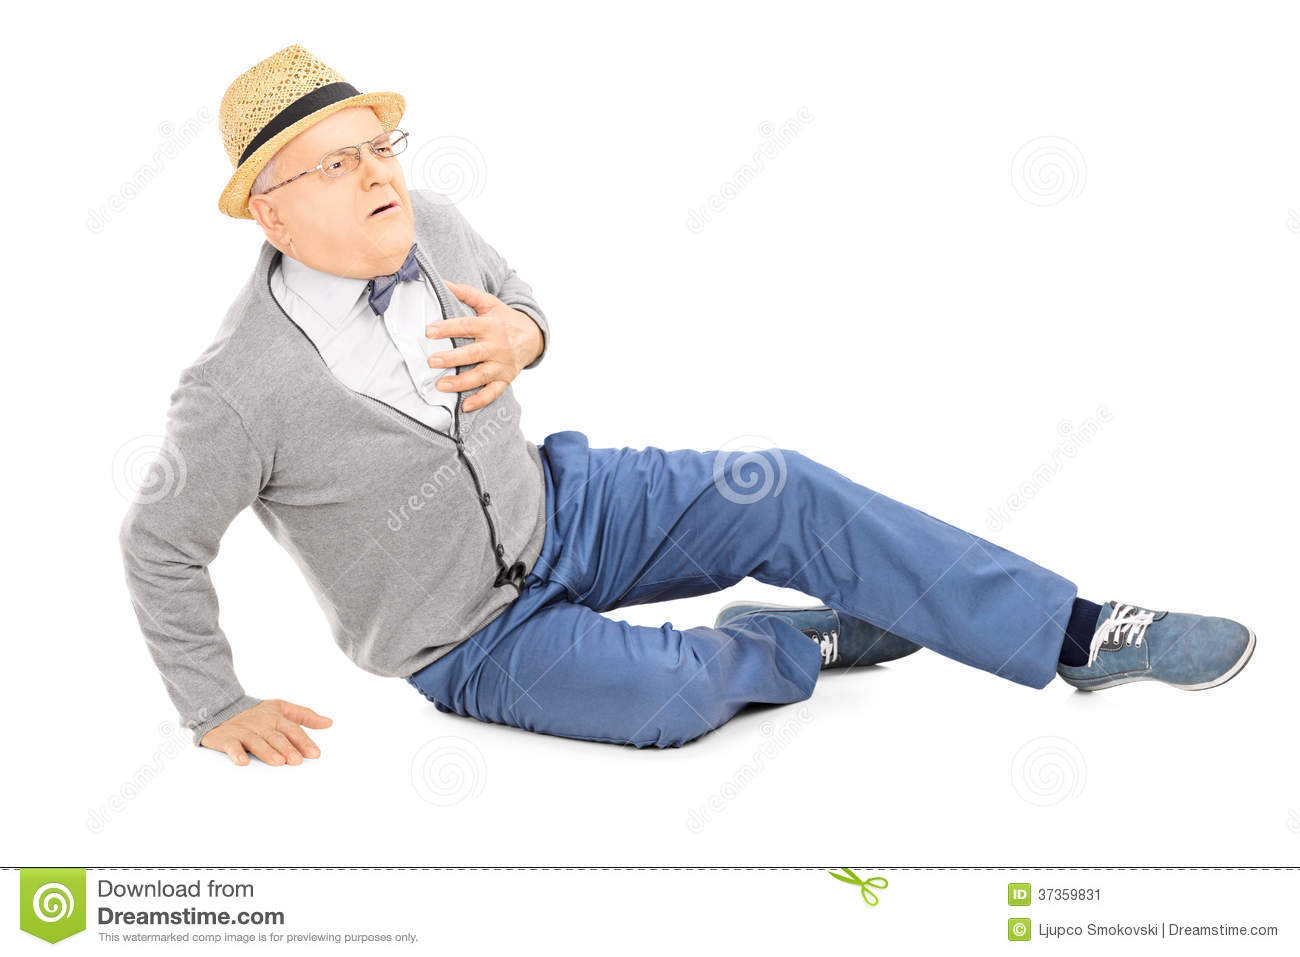 Cable Laying On Ground Art : Middle aged gentleman laying on the ground having a heart